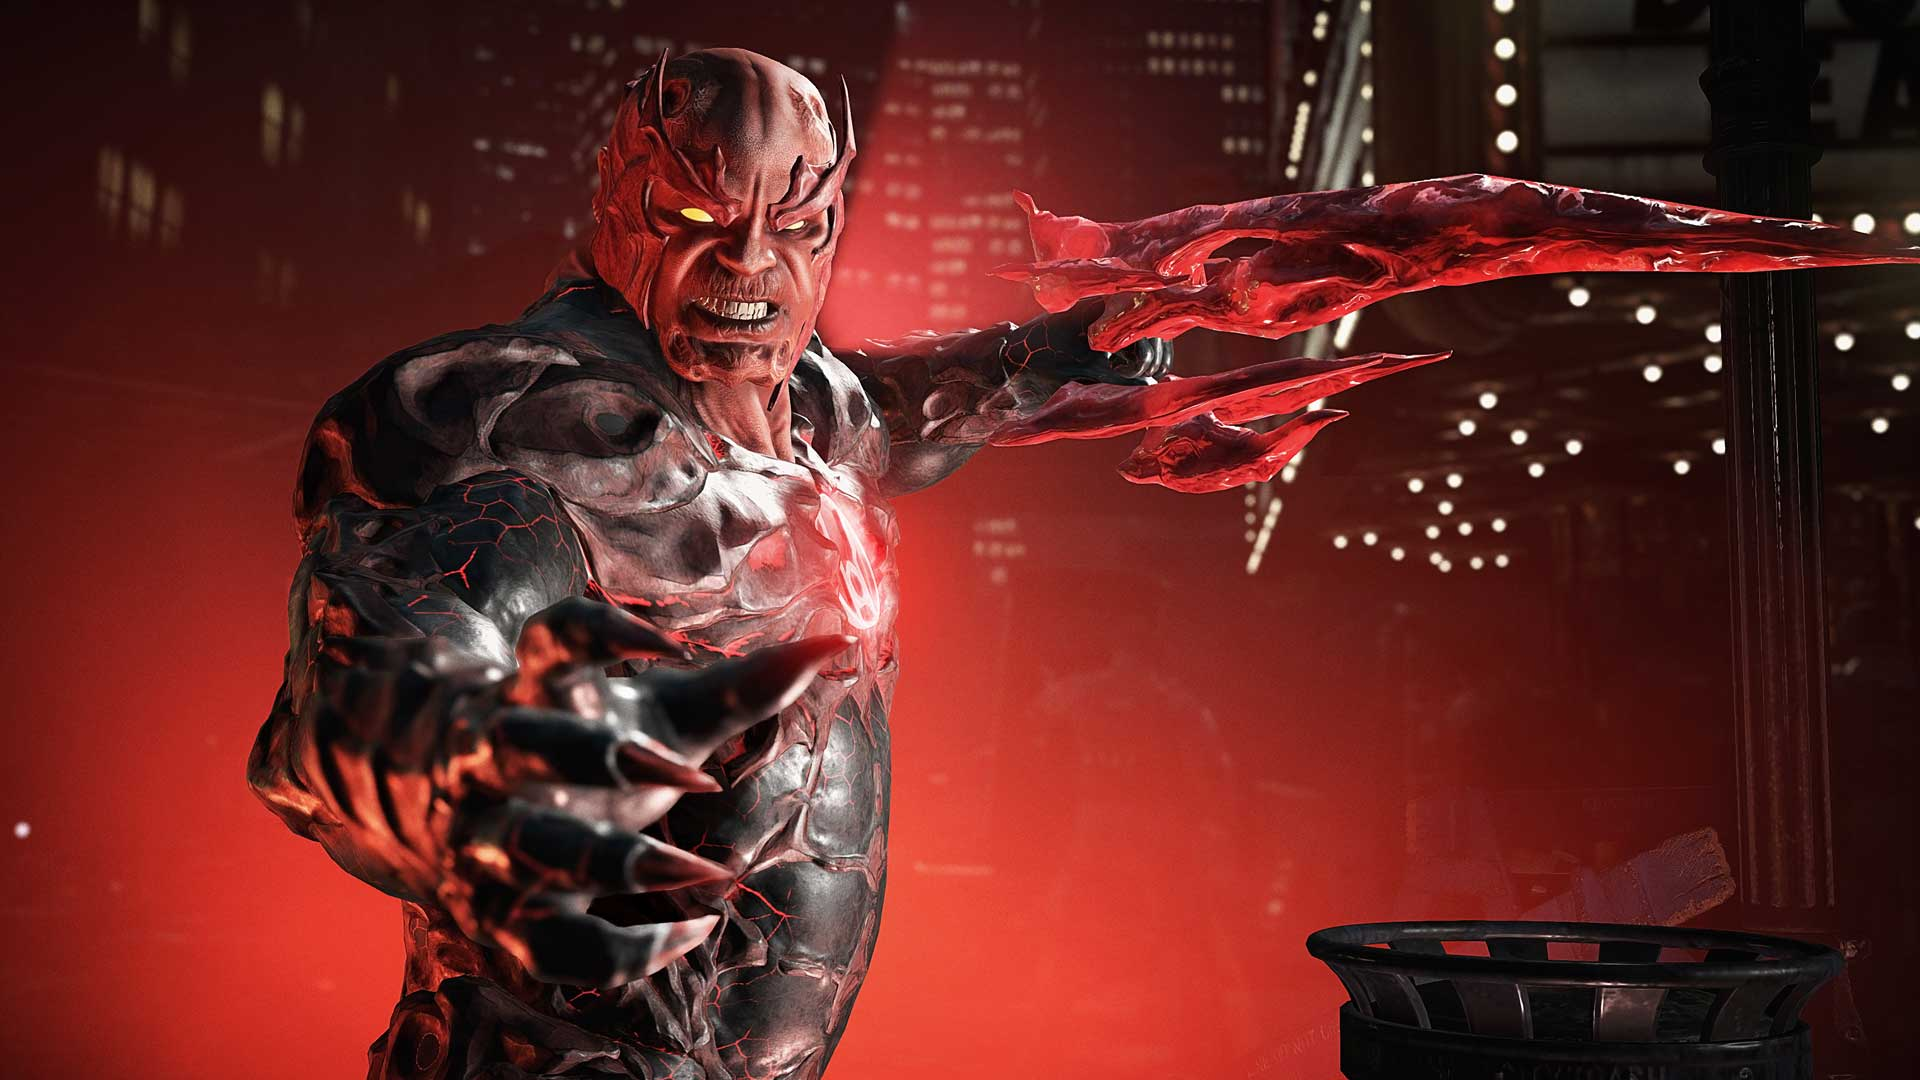 injustice 2 legendary edition pc system requirements